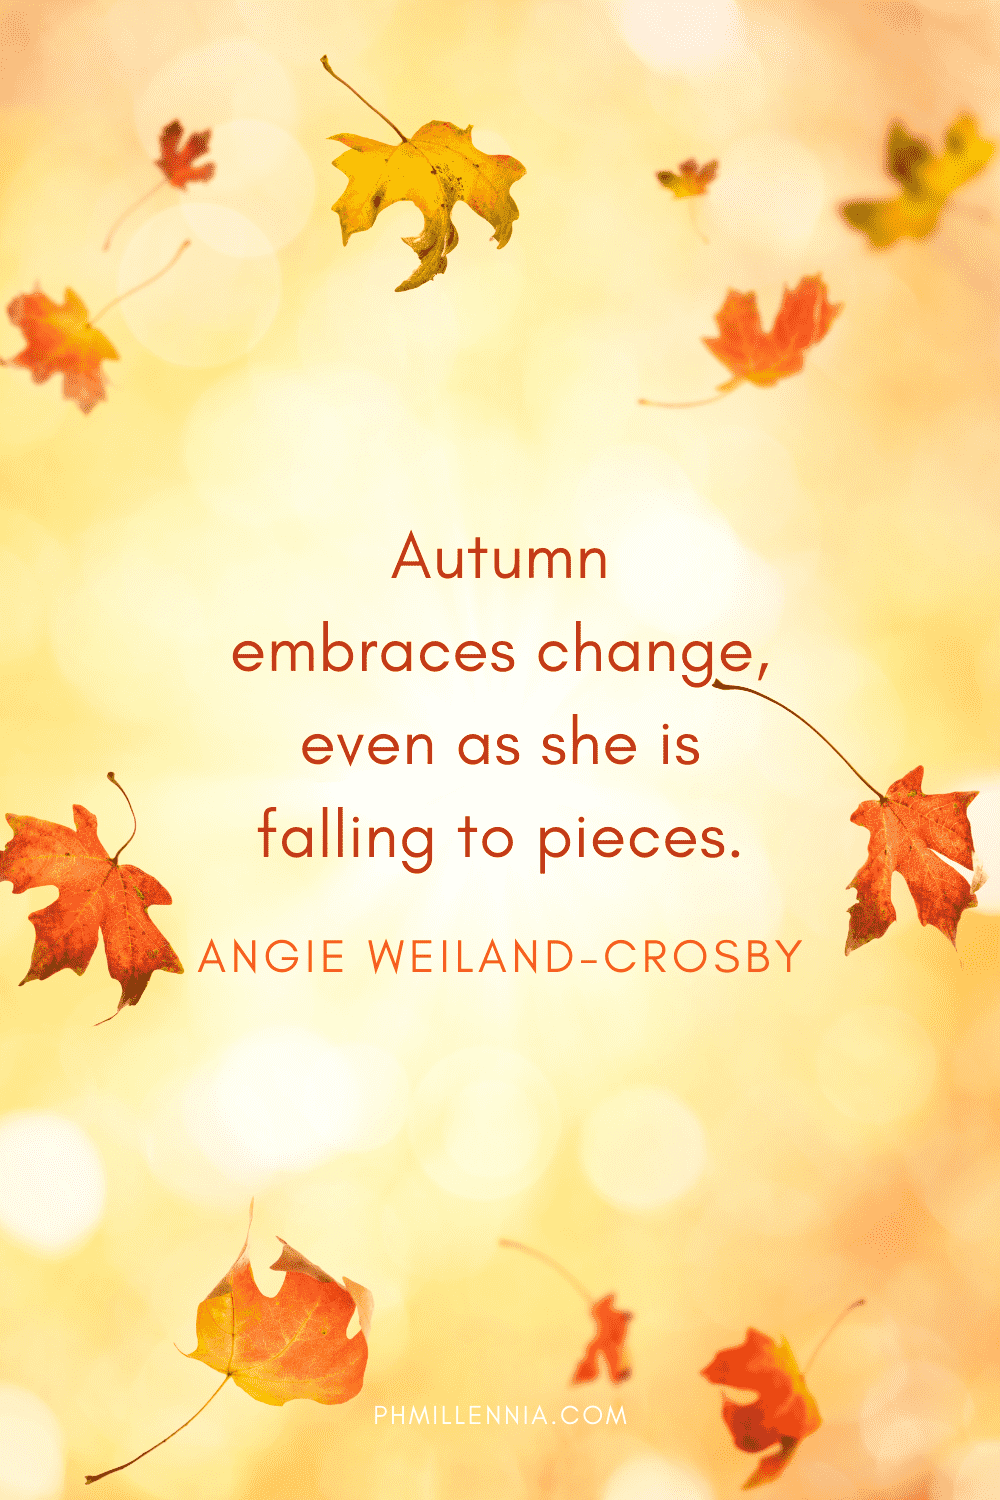 """A graphic featuring an autumn quote/fall saying over an image of autumn/fall leaves floating down, designed as a Pinterest Pin for the article """"199 Autumn Quotes to Fall Deeply and Spectacularly in Love With"""" on phmillennia.com"""